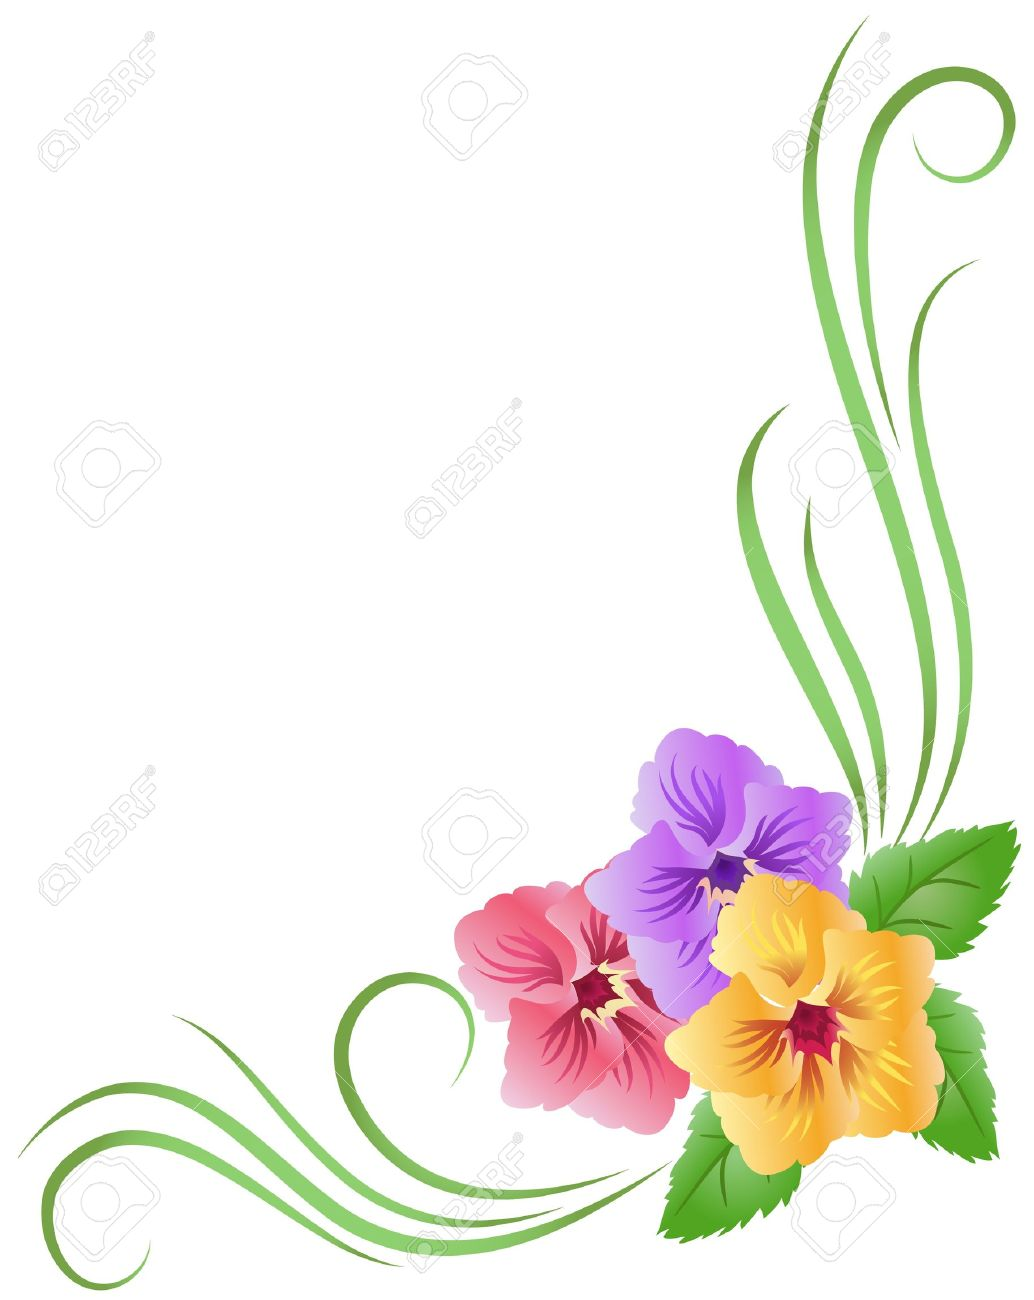 corner floral ornament with pansy royalty free cliparts vectors and stock illustration image 17927460 corner floral ornament with pansy